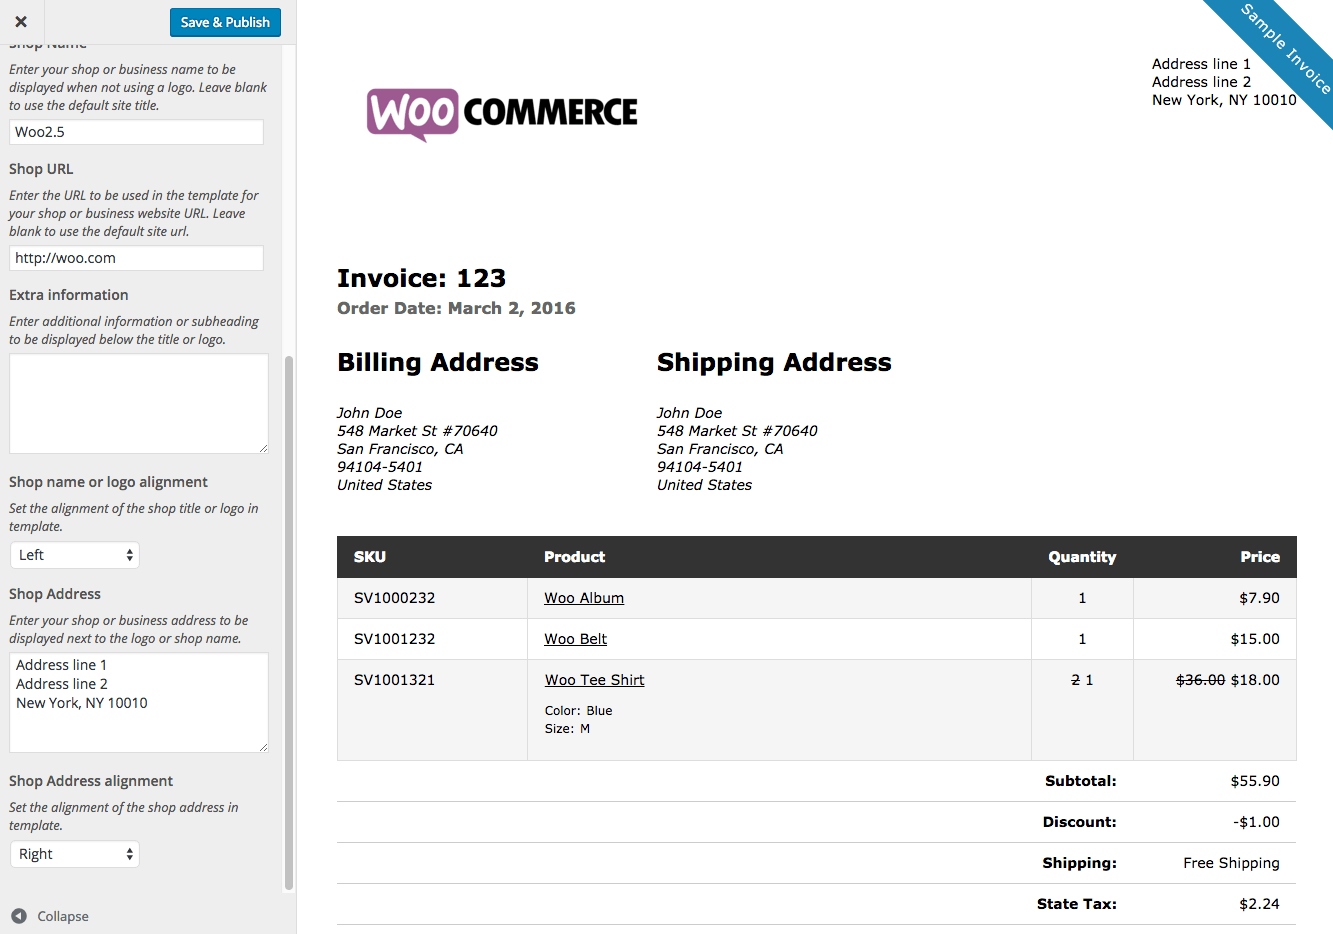 Carsforlessus  Unique Woocommerce Print Invoices Amp Packing Lists  Woocommerce Docs With Likable Woocommerce Print Invoices  Packing Lists Customizer With Cool Invoices Due Also Free Invoice Templates Excel In Addition Automotive Invoice Software Free And Invoice Terms And Conditions Sample As Well As Prius Invoice Price Additionally Web Design Invoice Sample From Docswoocommercecom With Carsforlessus  Likable Woocommerce Print Invoices Amp Packing Lists  Woocommerce Docs With Cool Woocommerce Print Invoices  Packing Lists Customizer And Unique Invoices Due Also Free Invoice Templates Excel In Addition Automotive Invoice Software Free From Docswoocommercecom